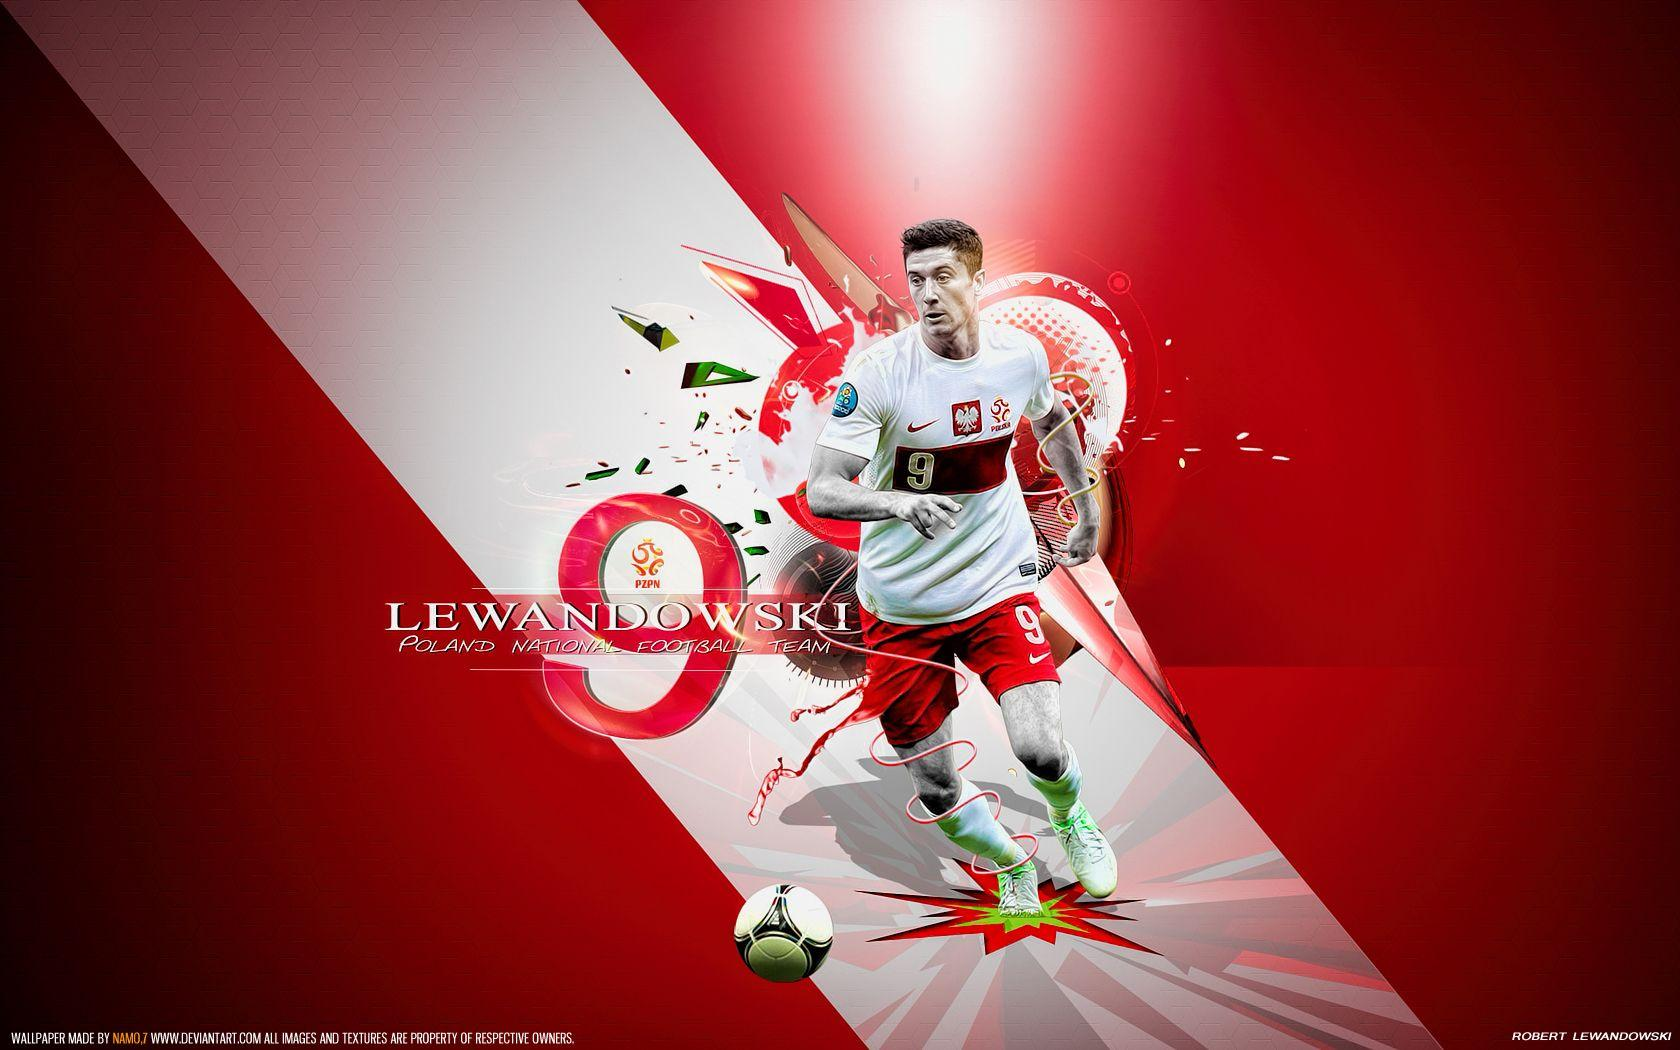 Lewandowski 9 Poland by namo,7 by 445578gfx